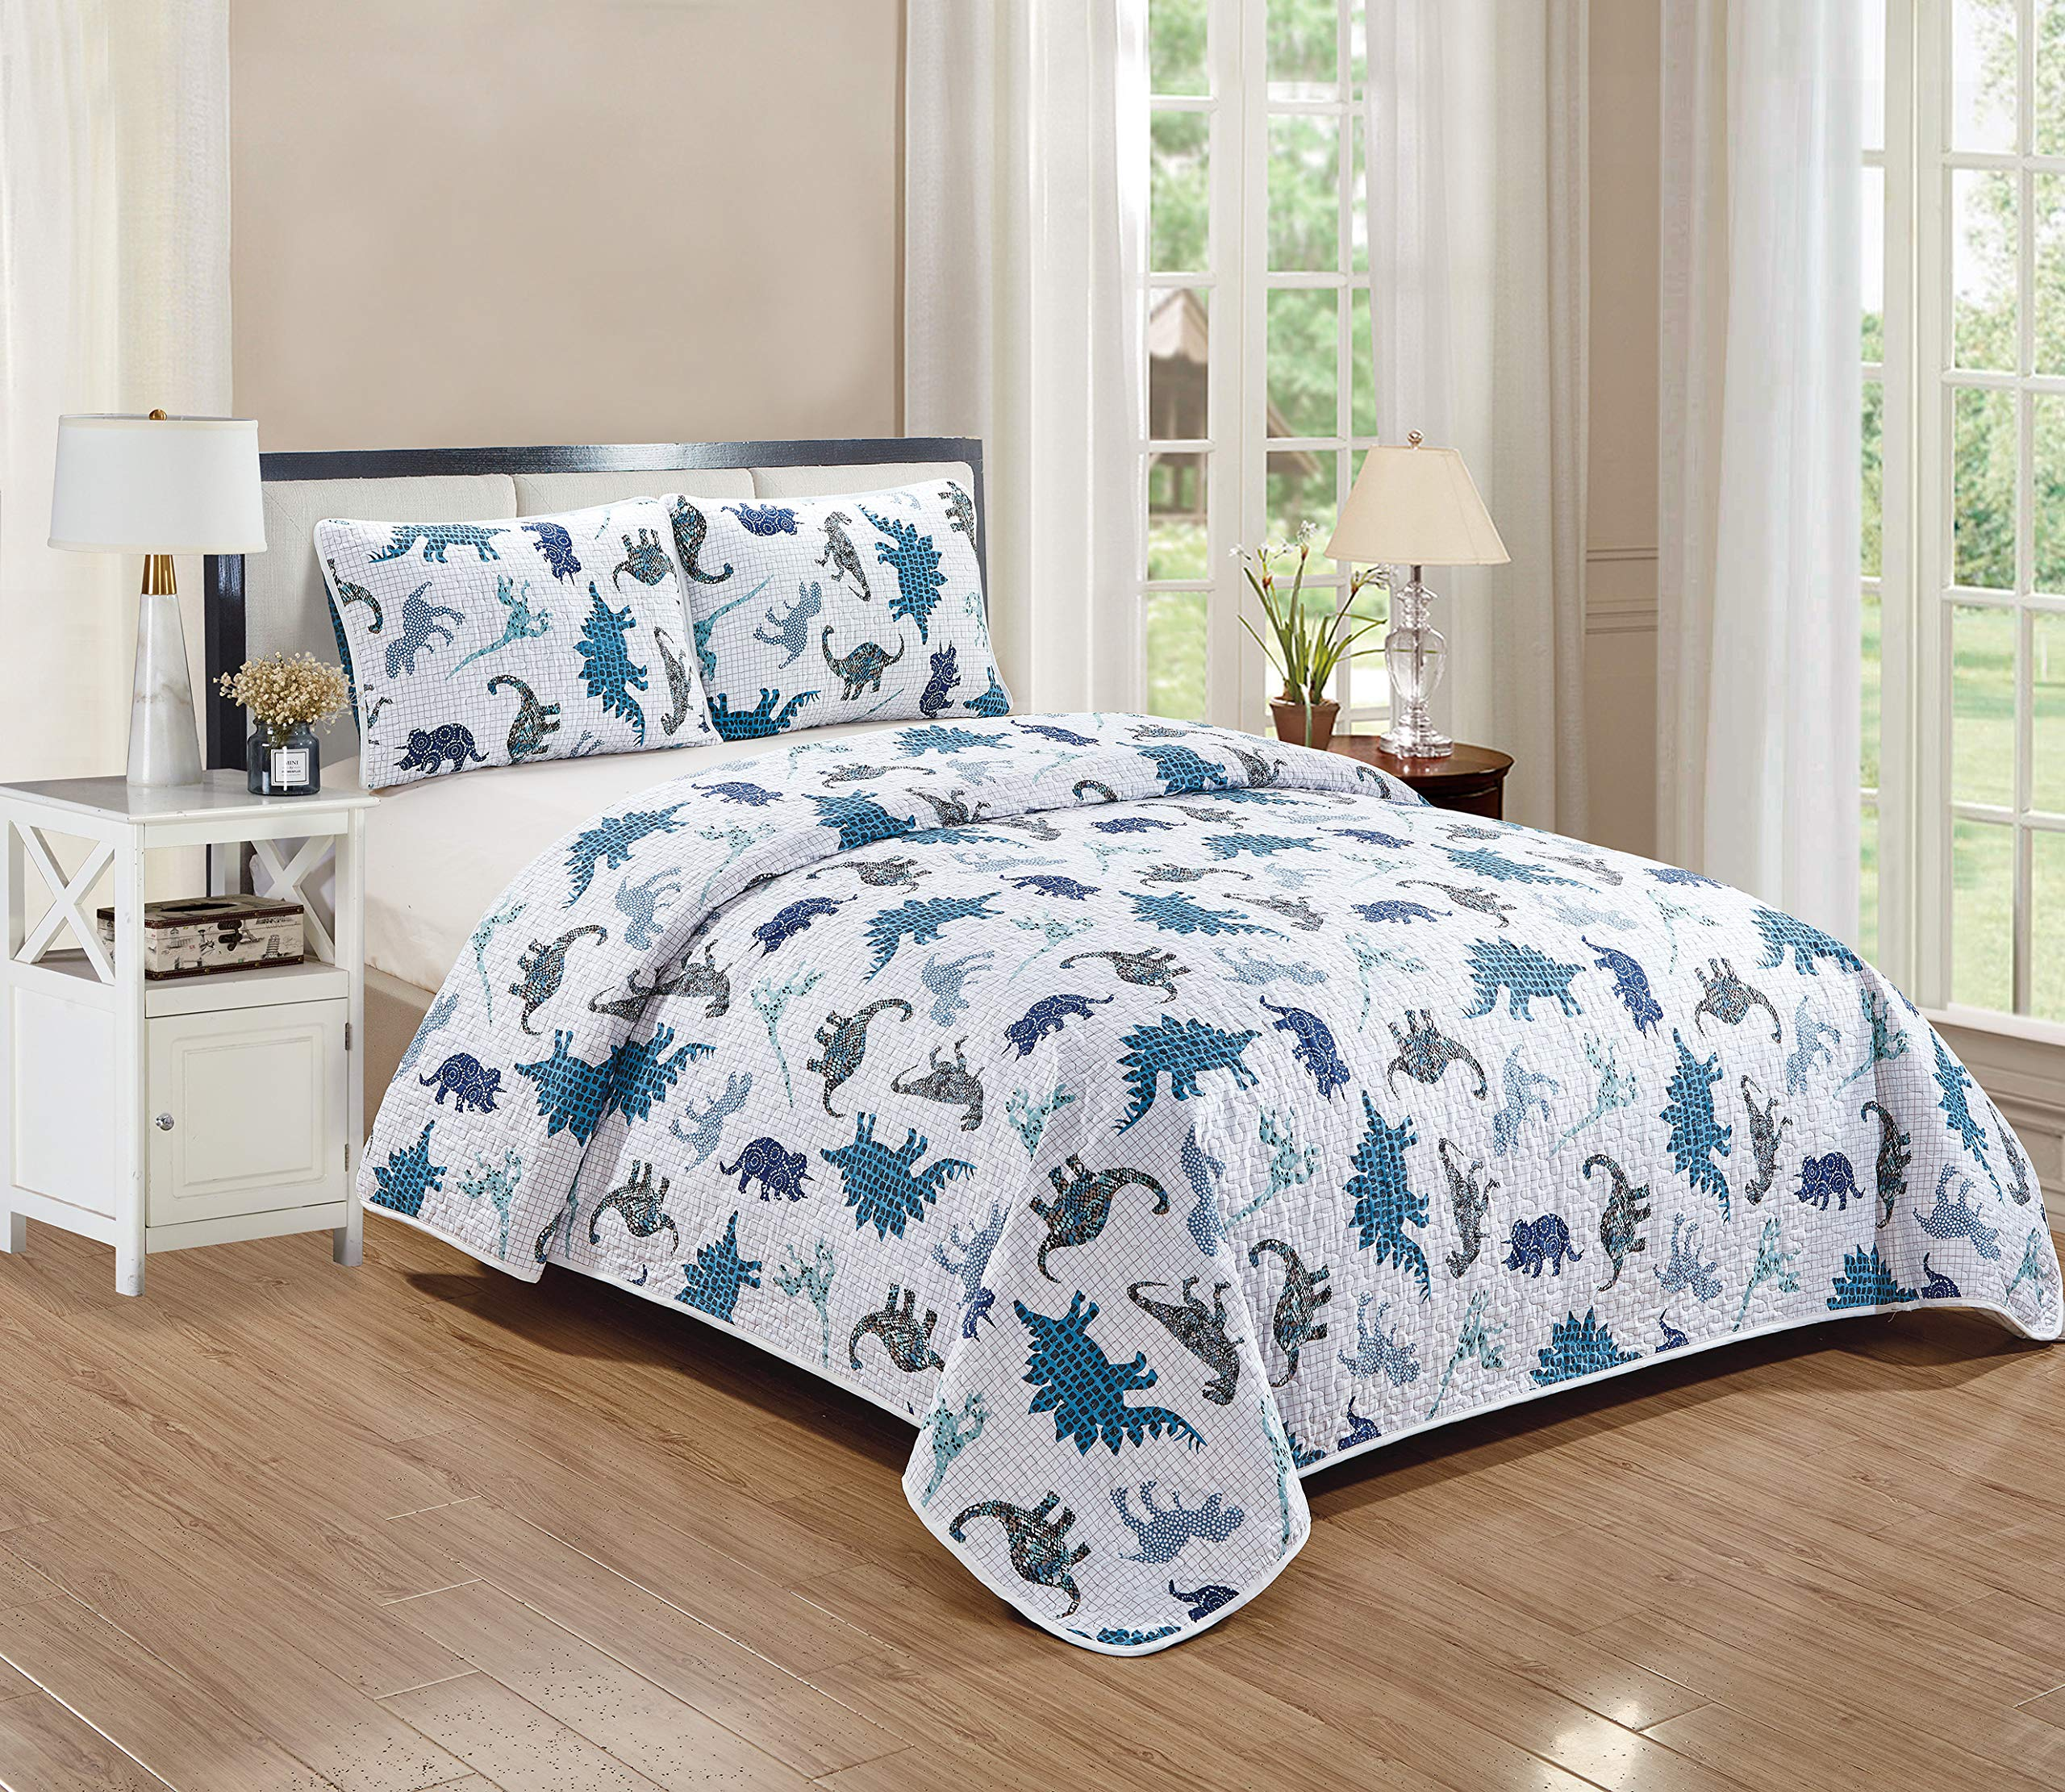 Kids Zone Home Linen Dino Kingdom 3pc Full/Queen Quilted Bedspread for Boys/Teens Dinosaurs Blue Black. by Kids Zone Home Linen